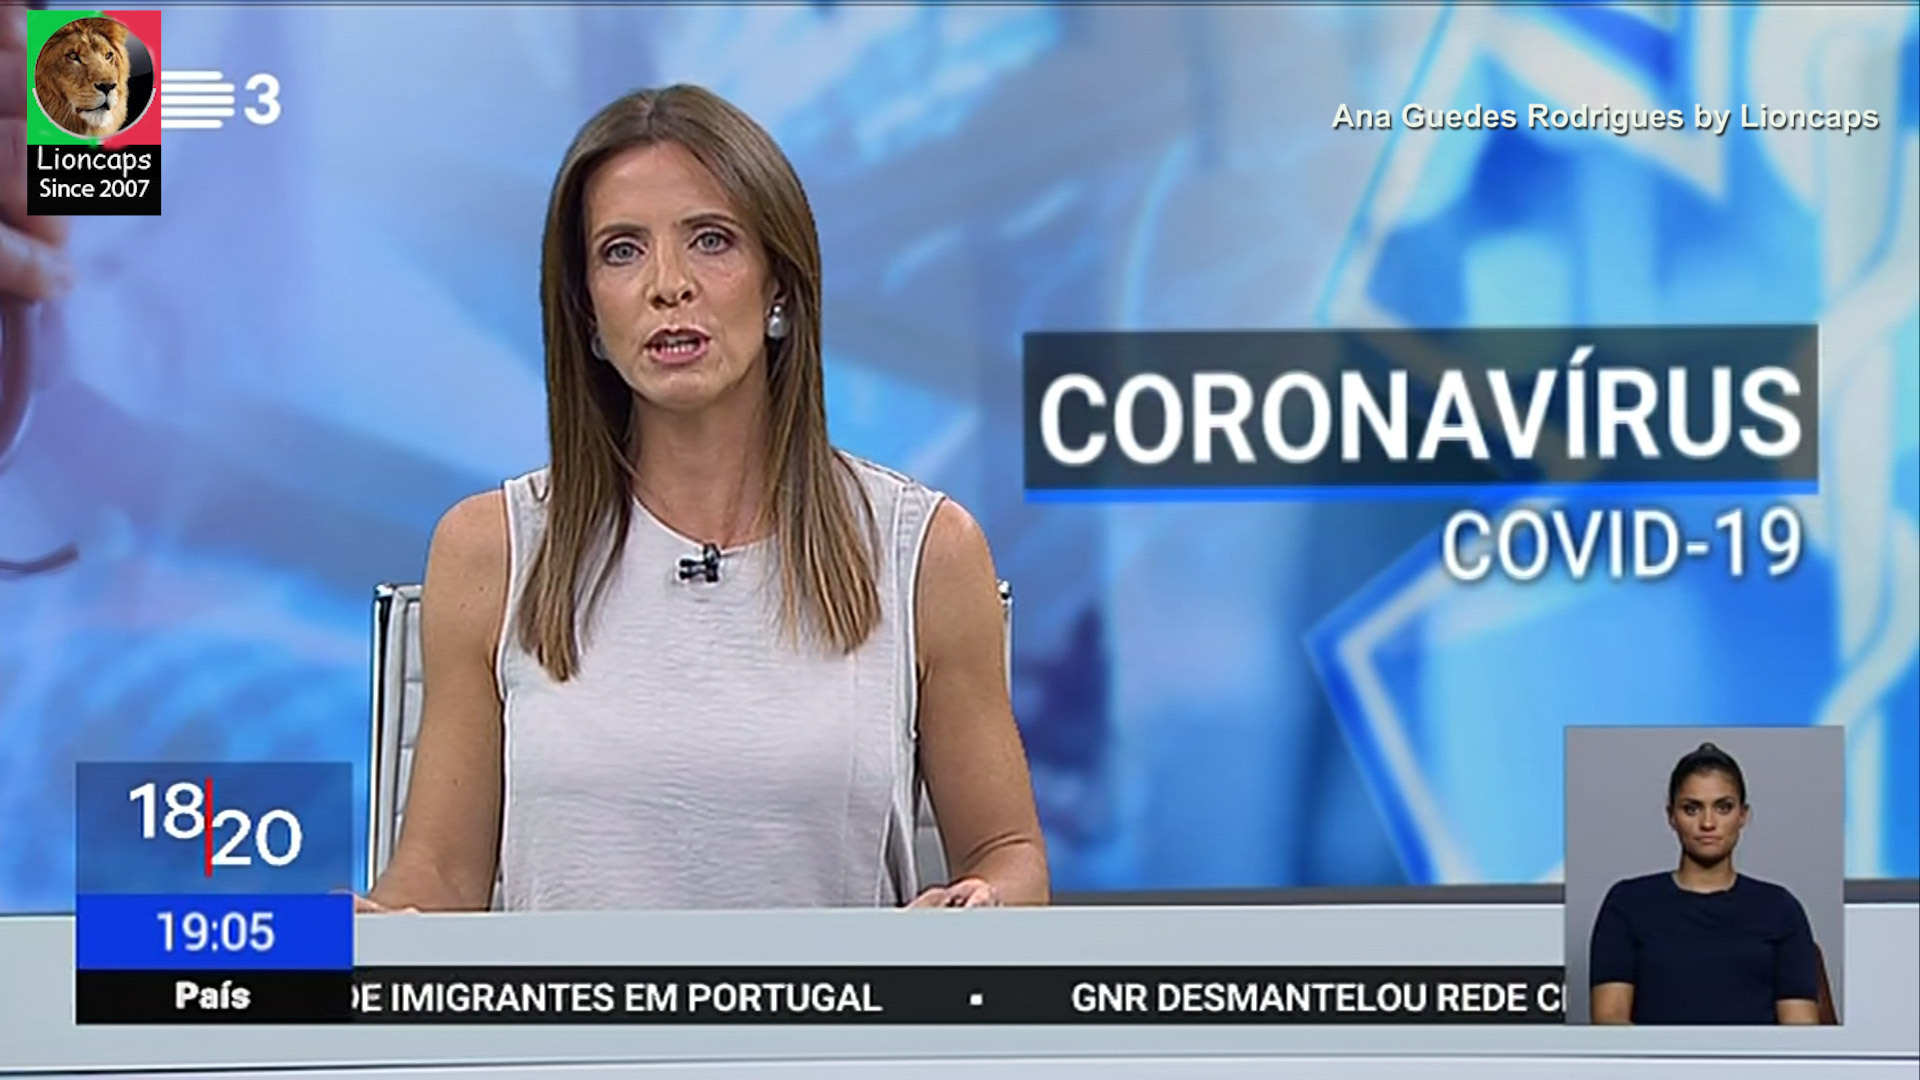 ana_guedes_rodrigues_lioncaps_15_08_2021 (4).jpg